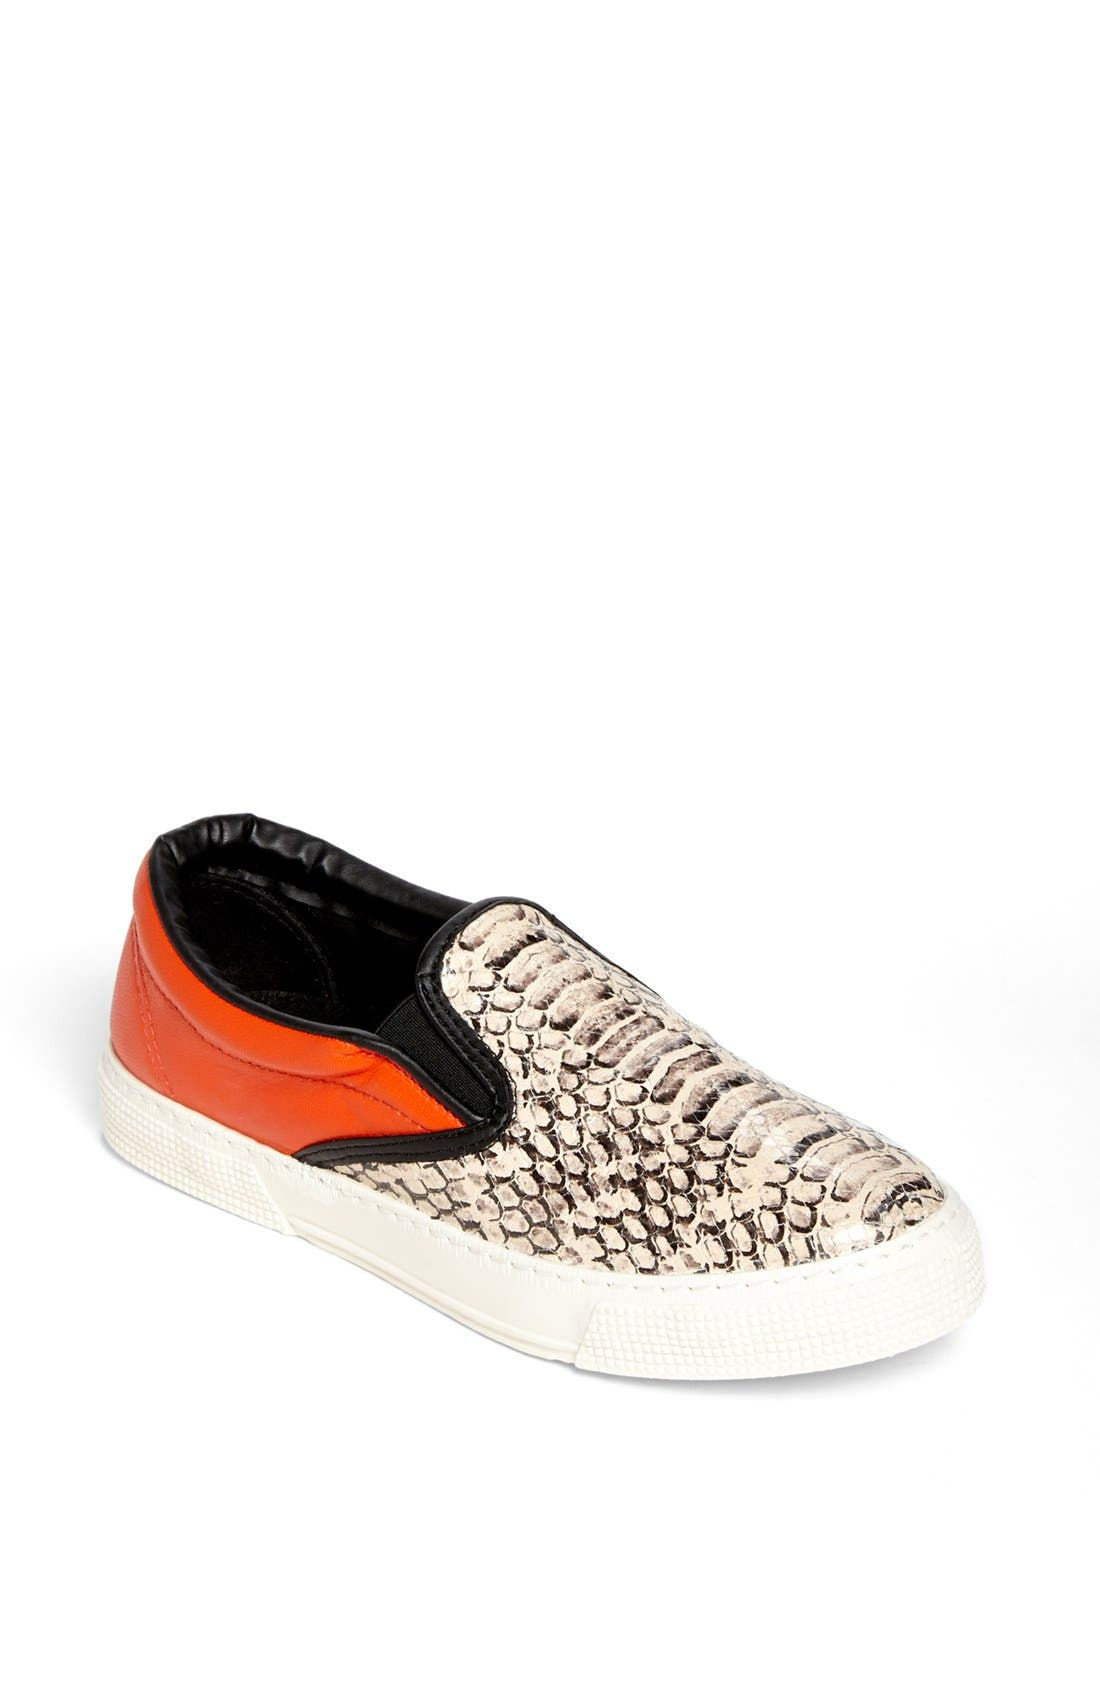 Main Image - Kurt Geiger London Slip-On Sneaker